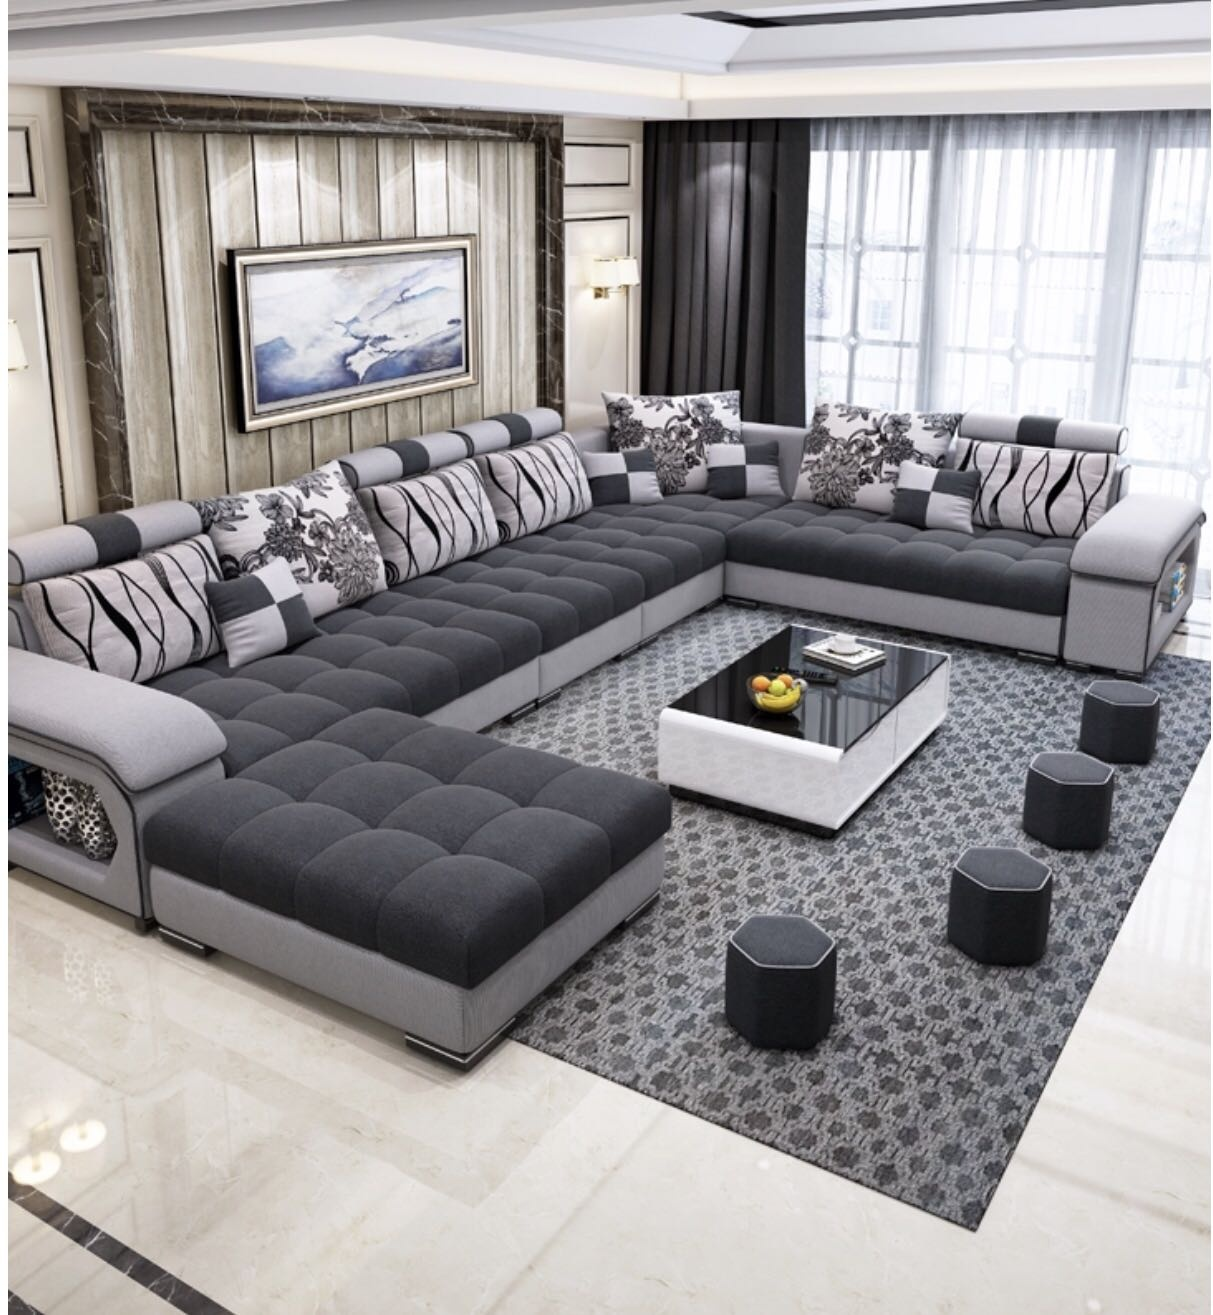 Furniture Factory Provided Living Room Sofas Fabric Sofa Bed Royal Sofa Set 7 Seater Living Room Furniture Designs View Living Room Sofas Shiquanyoupin Product Details From Shenzhen Shiquan Youpin Home Trading Co Ltd